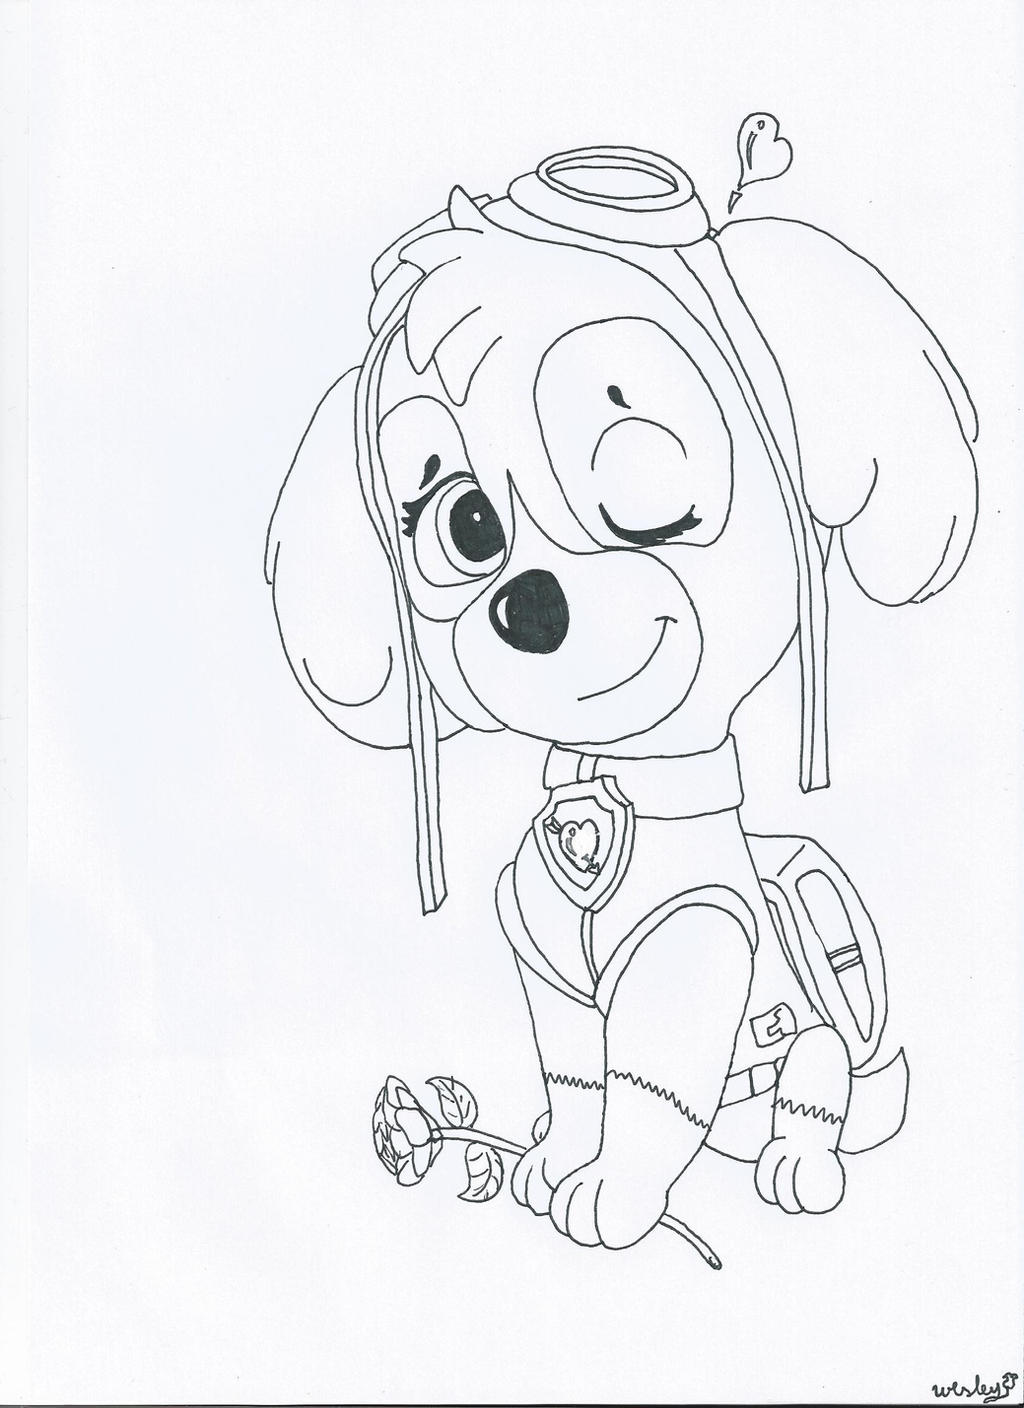 Paw Patrol Tundra Coloring Pages : Paw patrol skye coloring page images